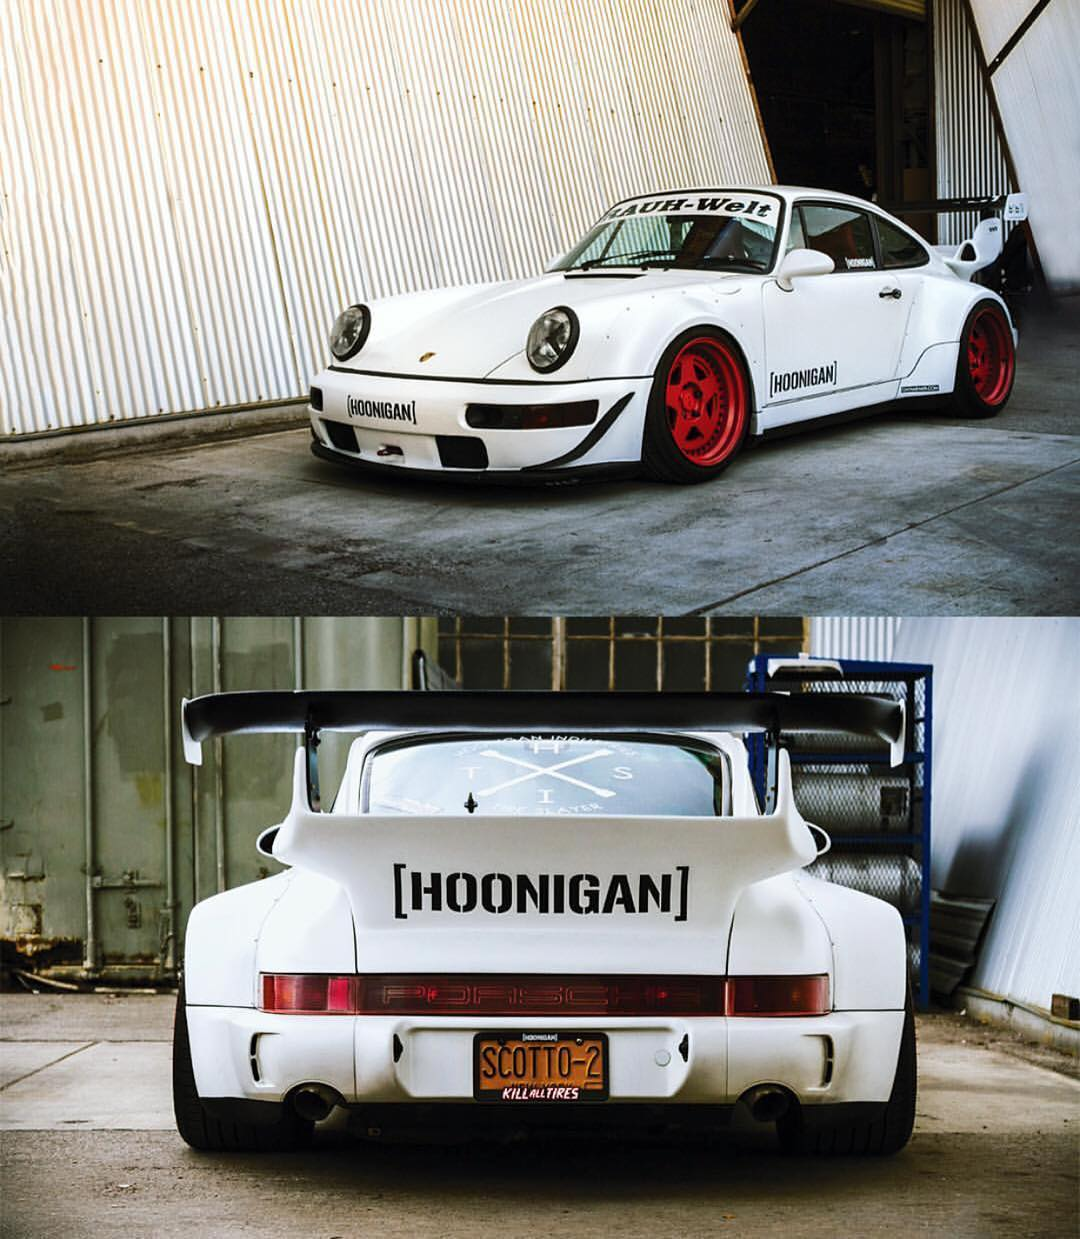 Fun fact: @brianscotto's 964 Turbo aka the #RWBxHOONIGAN was one of the first two RWBs built in the states (the other has been remixed) and has plenty of ponies to back up them wide hips and aggressive aero!